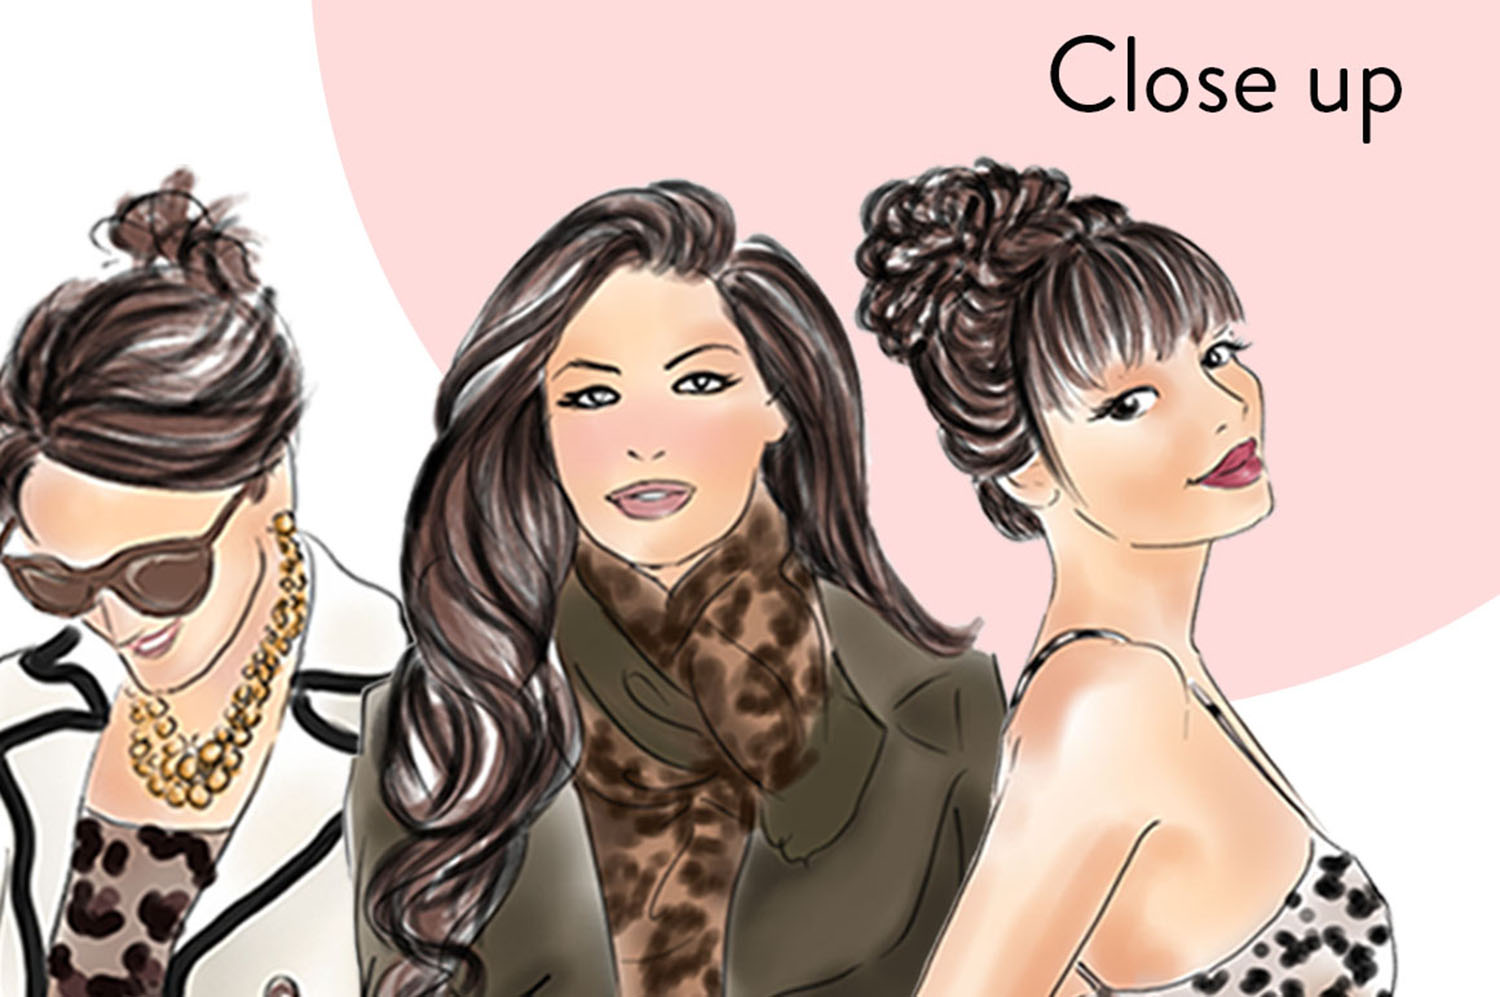 Animal print girls Watercolour fashion clipart example image 2